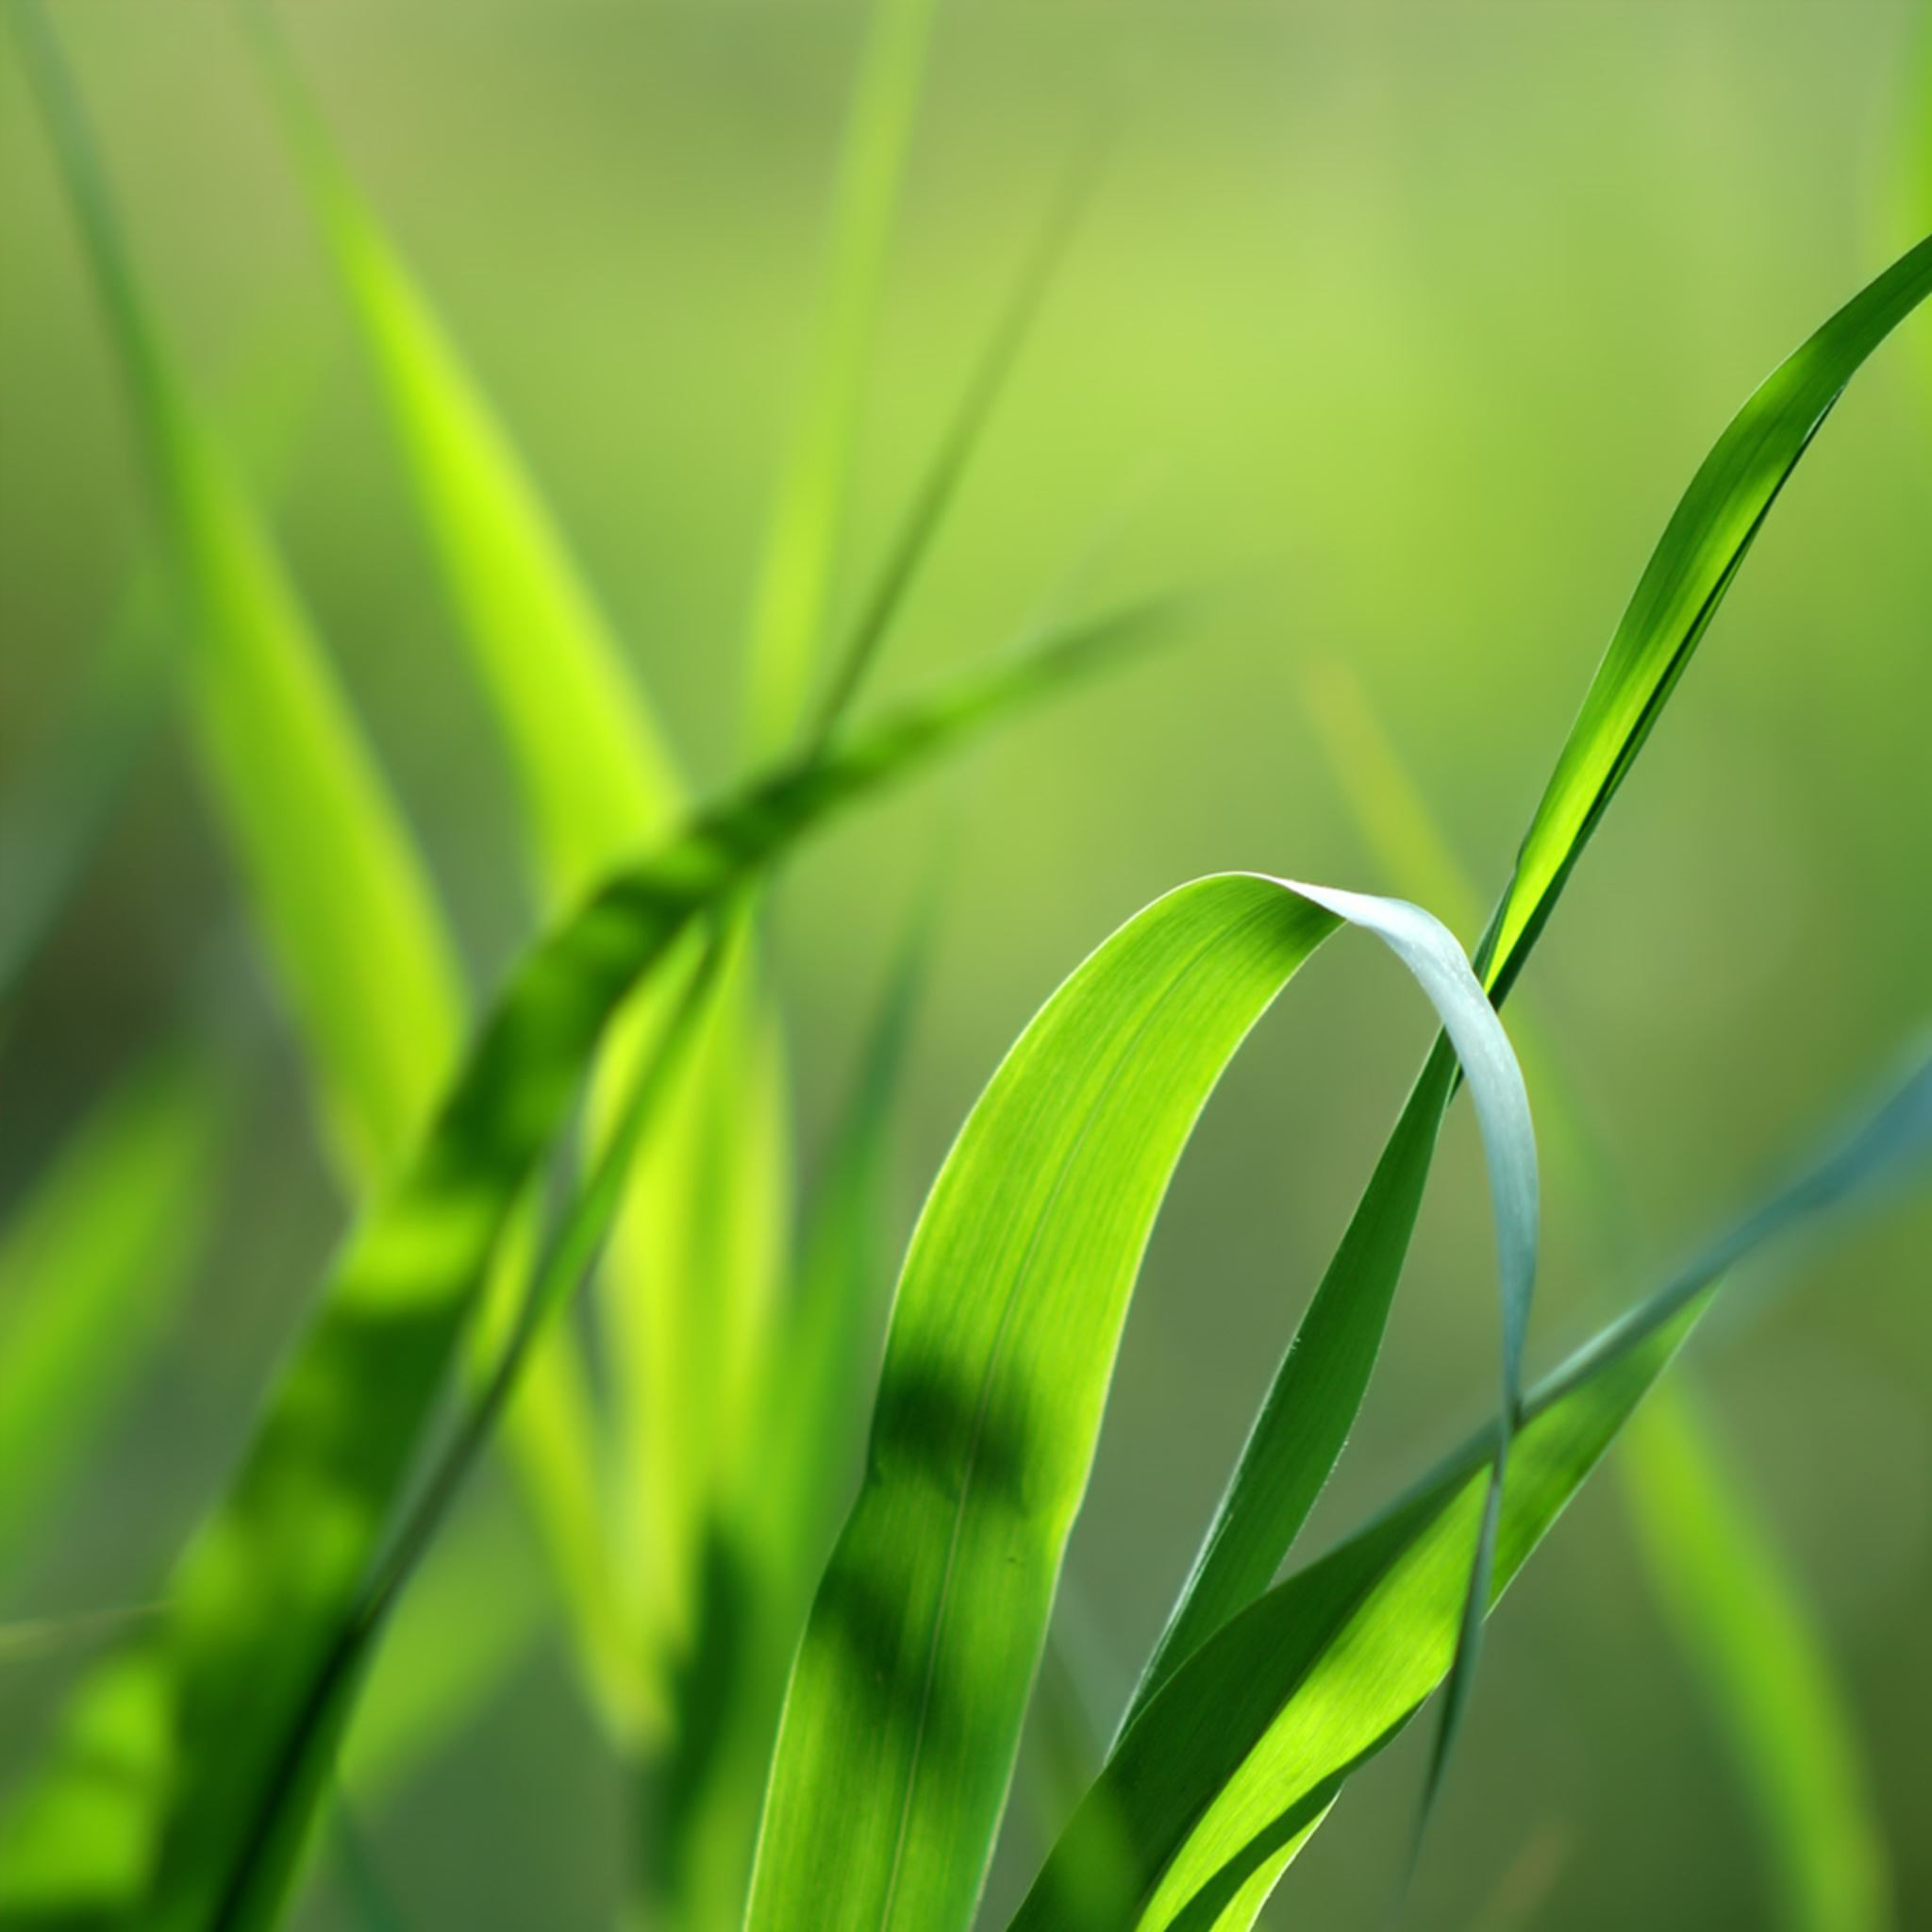 Nature Blades Of Grass Ipad Air Wallpapers Free Download